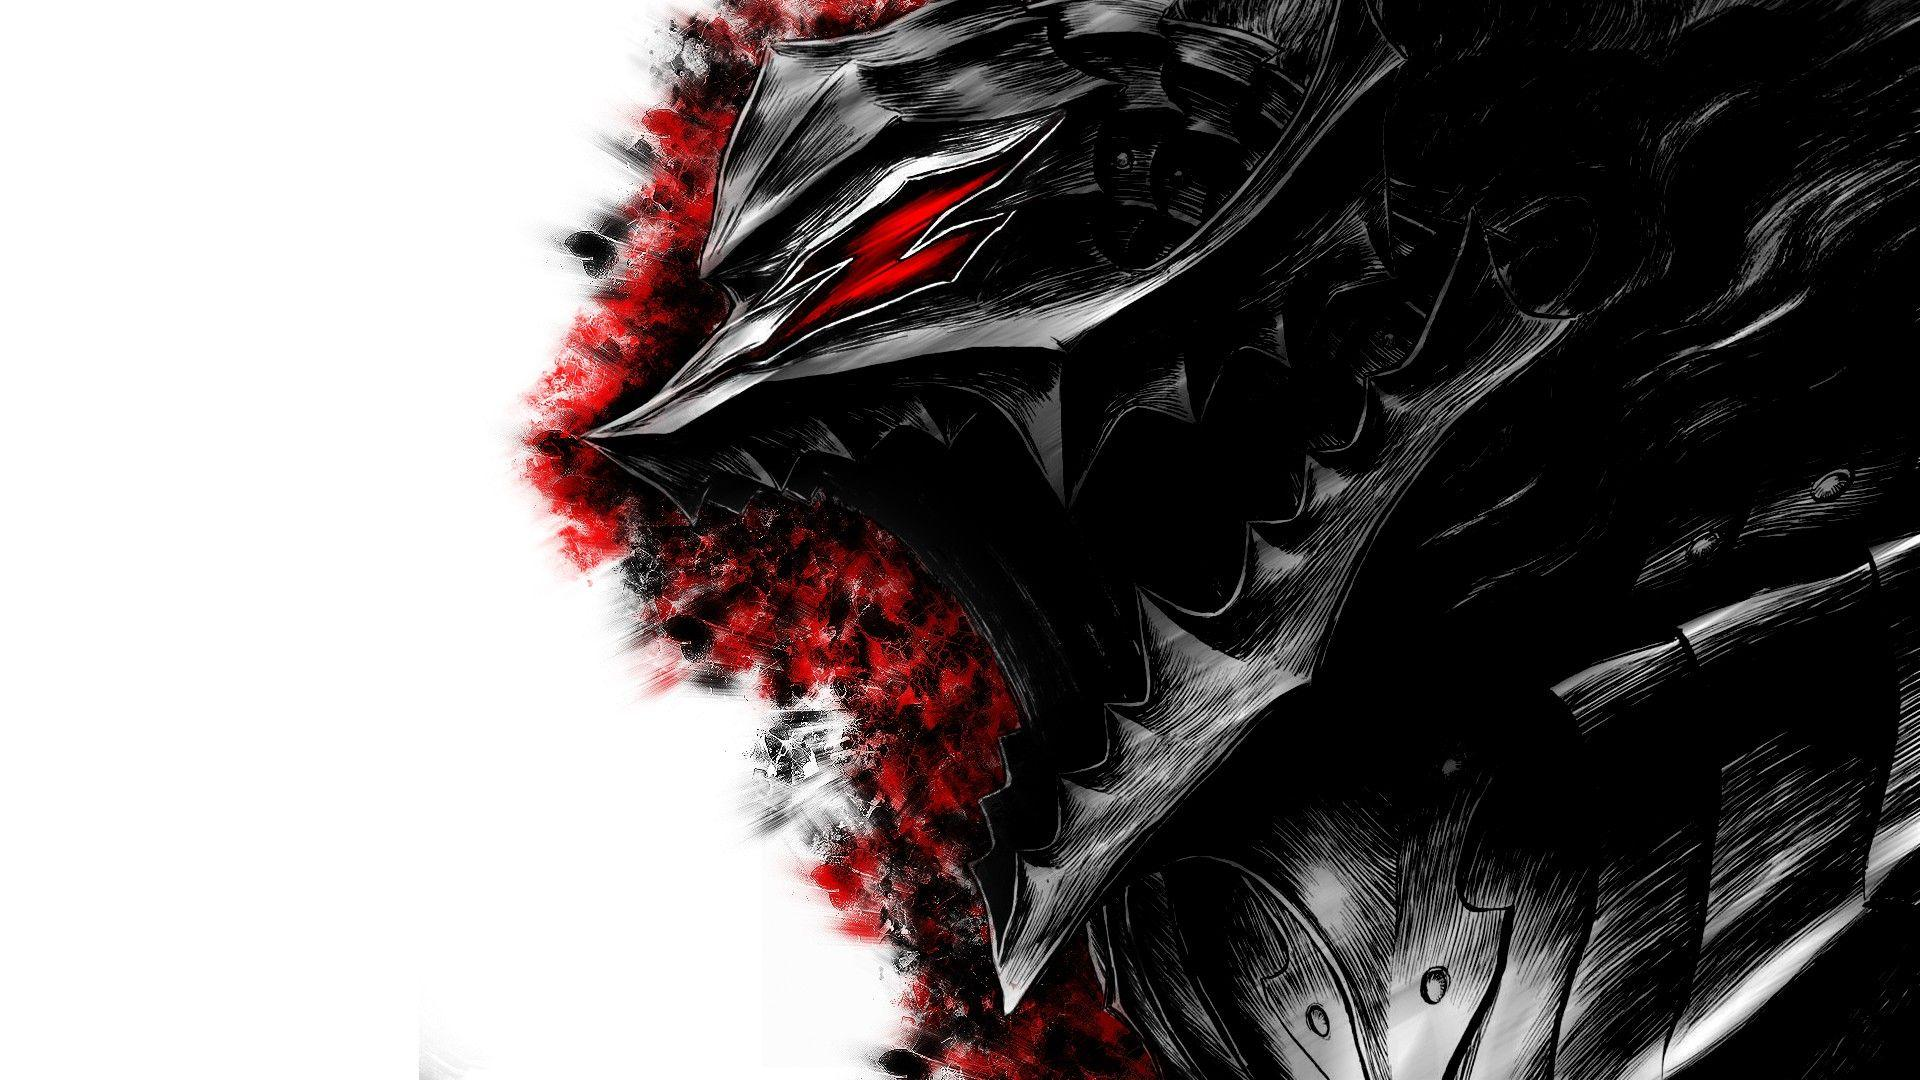 Berserk, Guts, armor, artwork, anime, anime boys :: Wallpapers